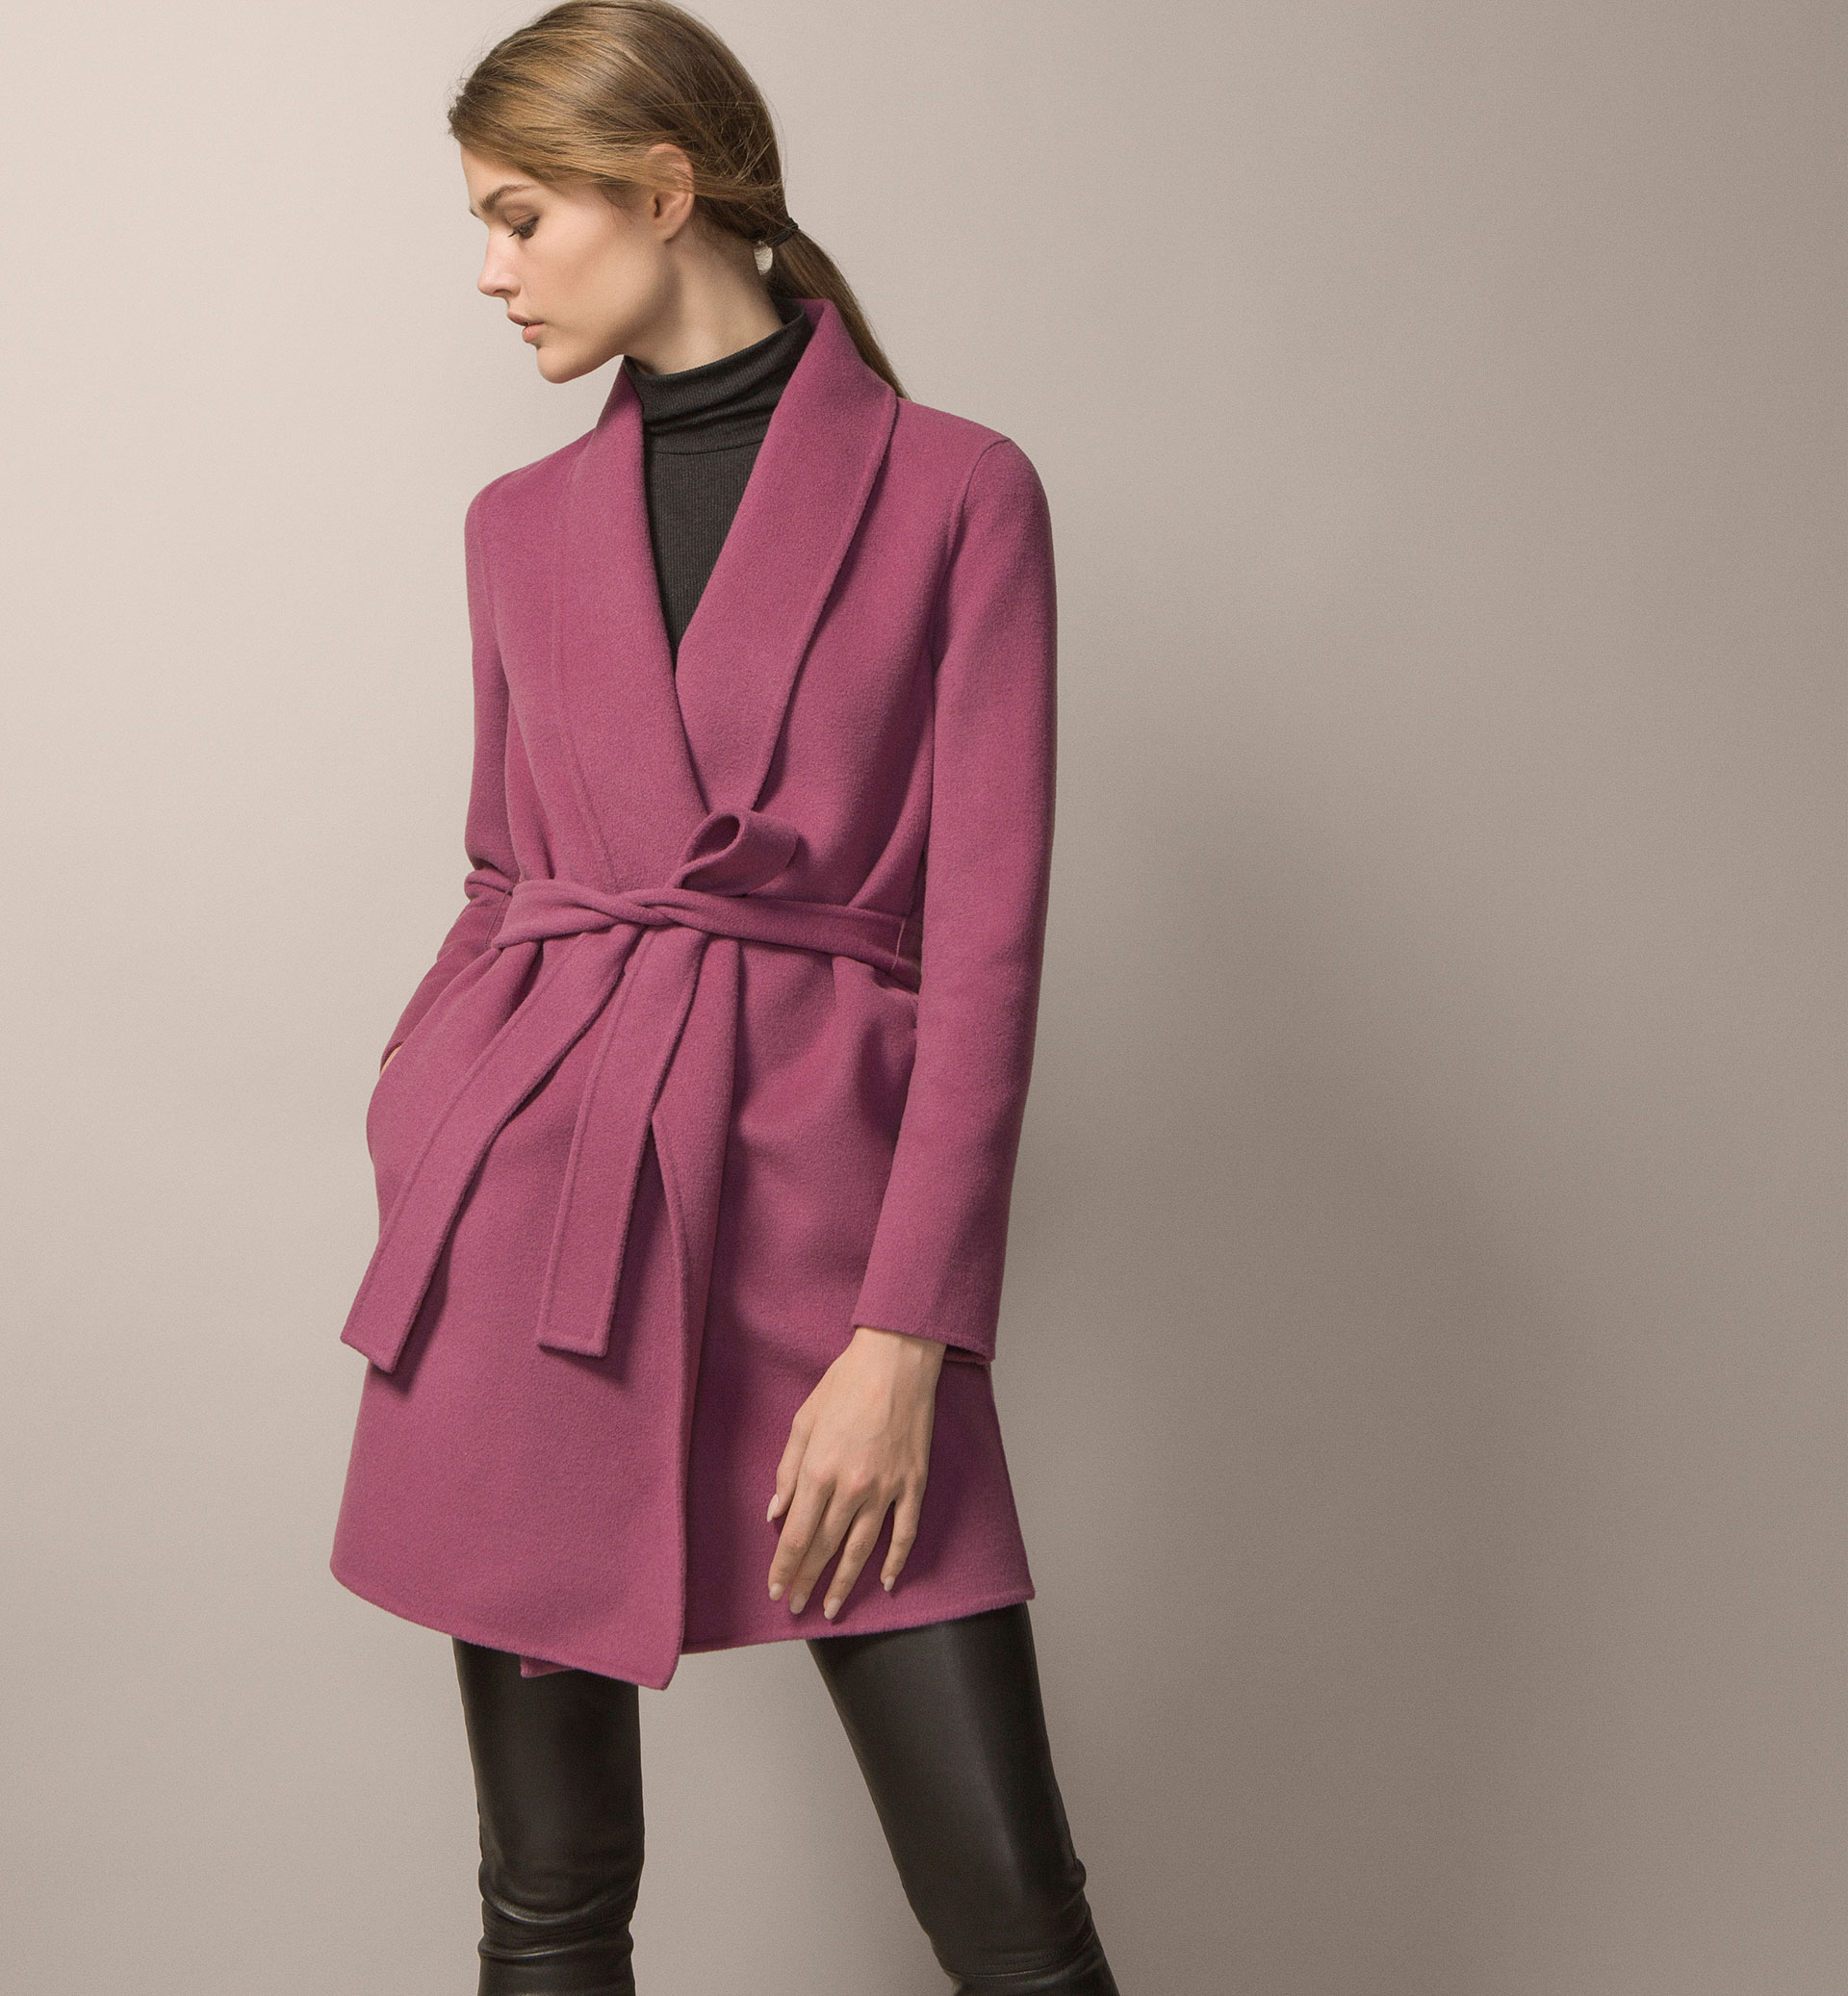 ROBE COAT WITH ROUNDED LAPEL